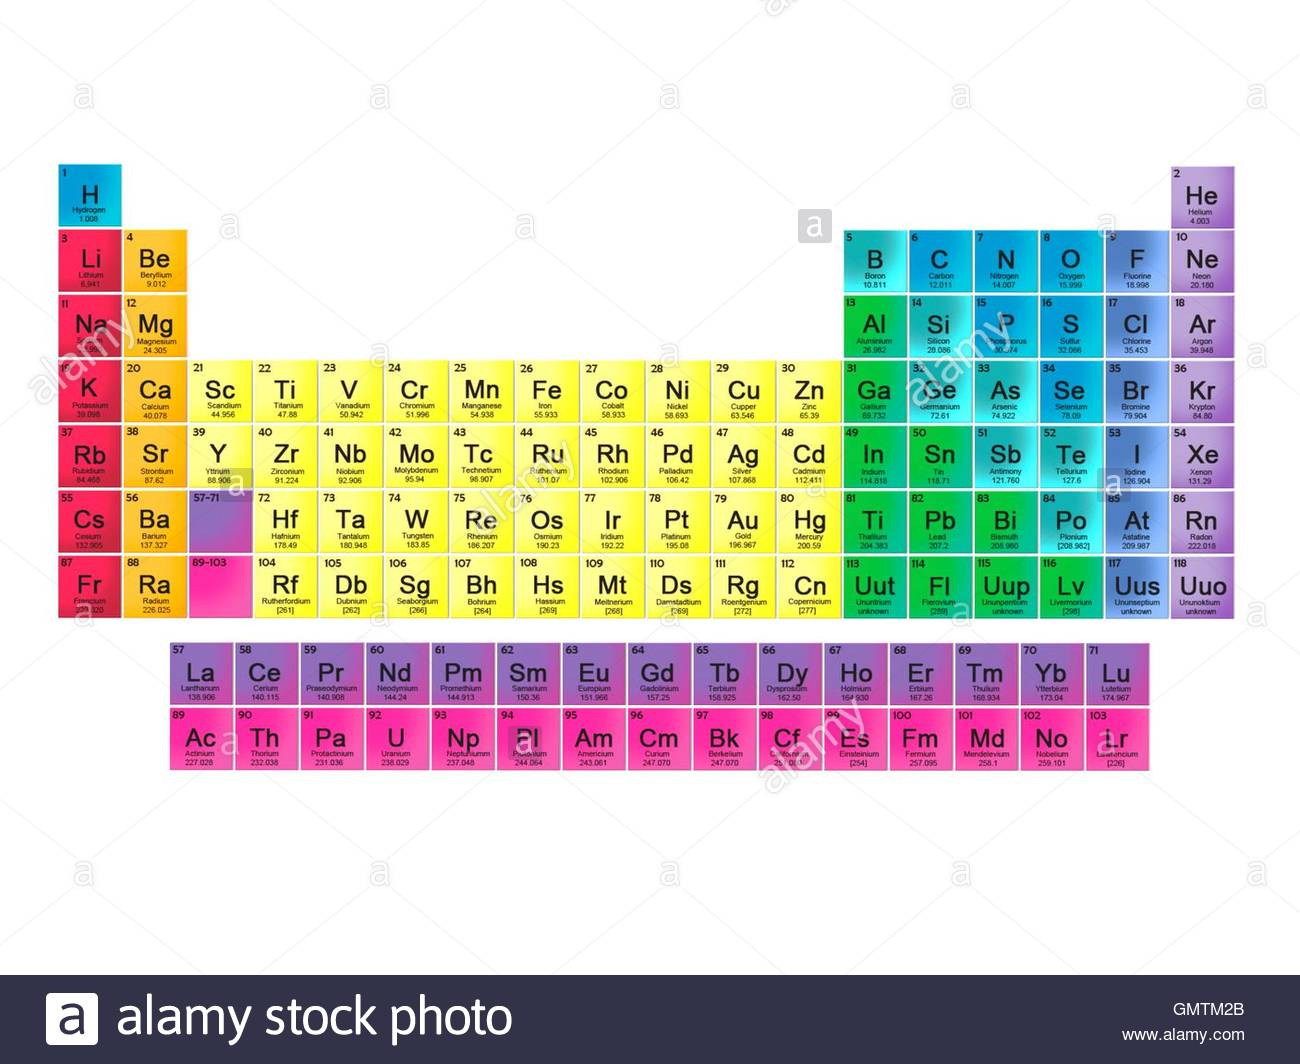 Mendeleev periodic table stock photos mendeleev periodic table modern periodic table in 18 column layout this table includes all 118 known elements gamestrikefo Gallery